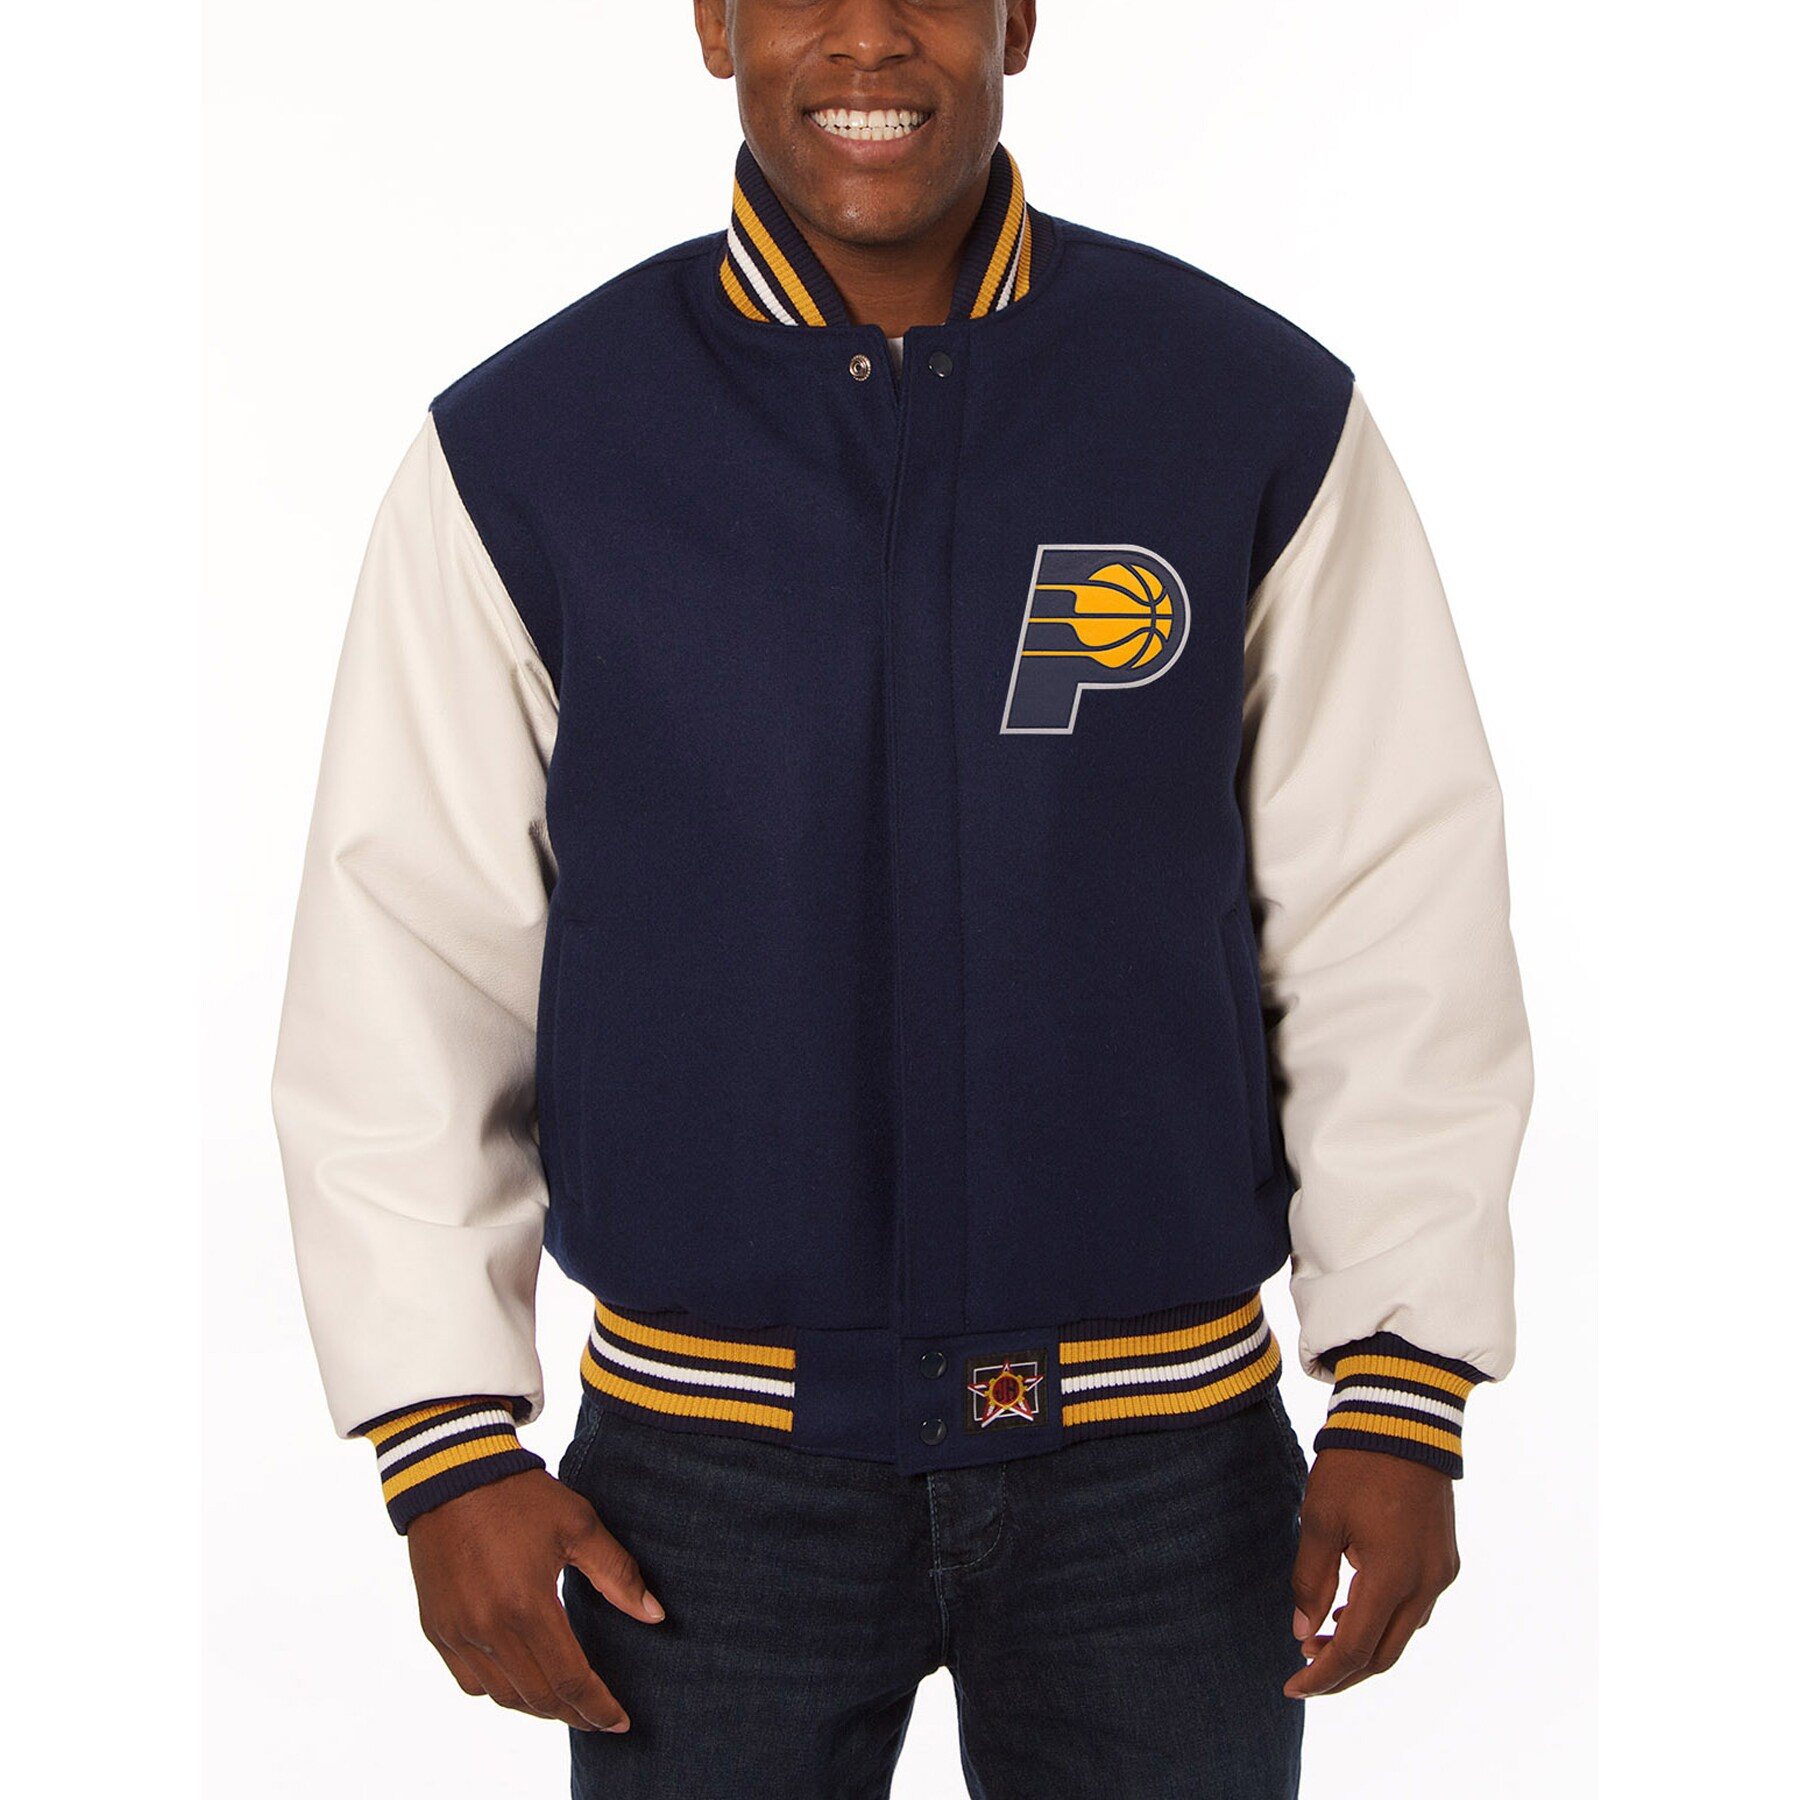 Indiana Pacers JH Design Domestic Two-Tone Wool and Leather Jacket - Navy